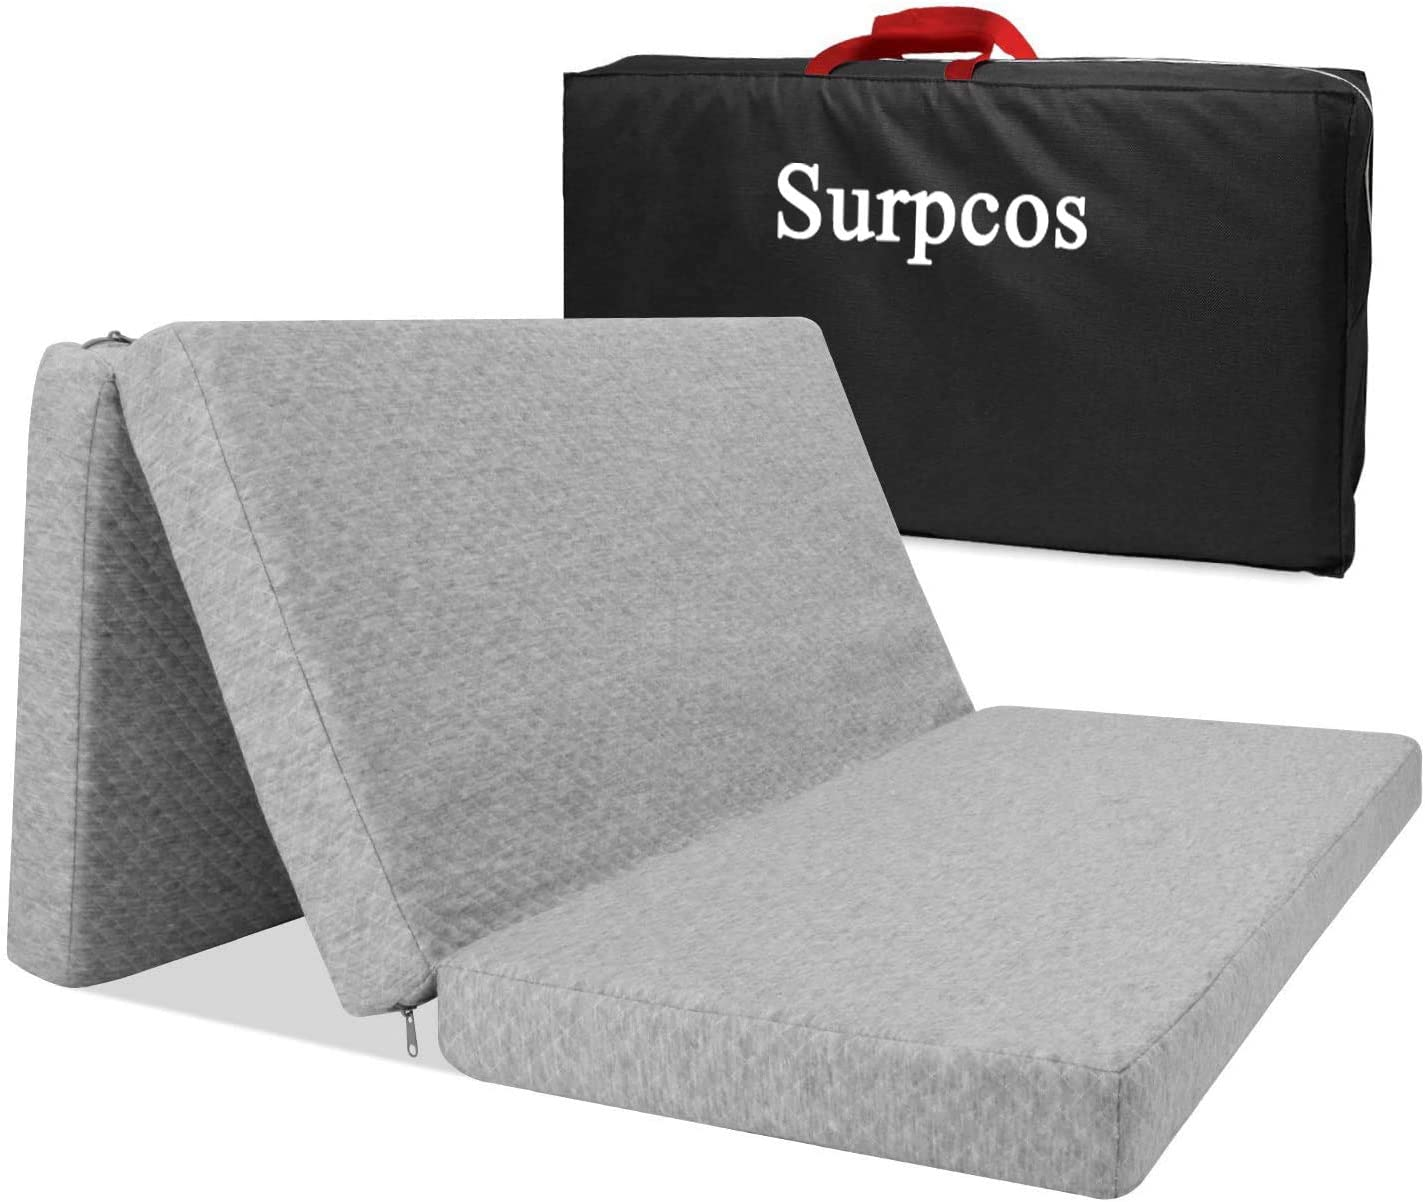 Surpcos Trifold Mattress Pad with Storage Bag, Portable Playard Mattress for Babies Infants or Toddlers, Foldable N Play Mattress for Cribs, Grey 38.5